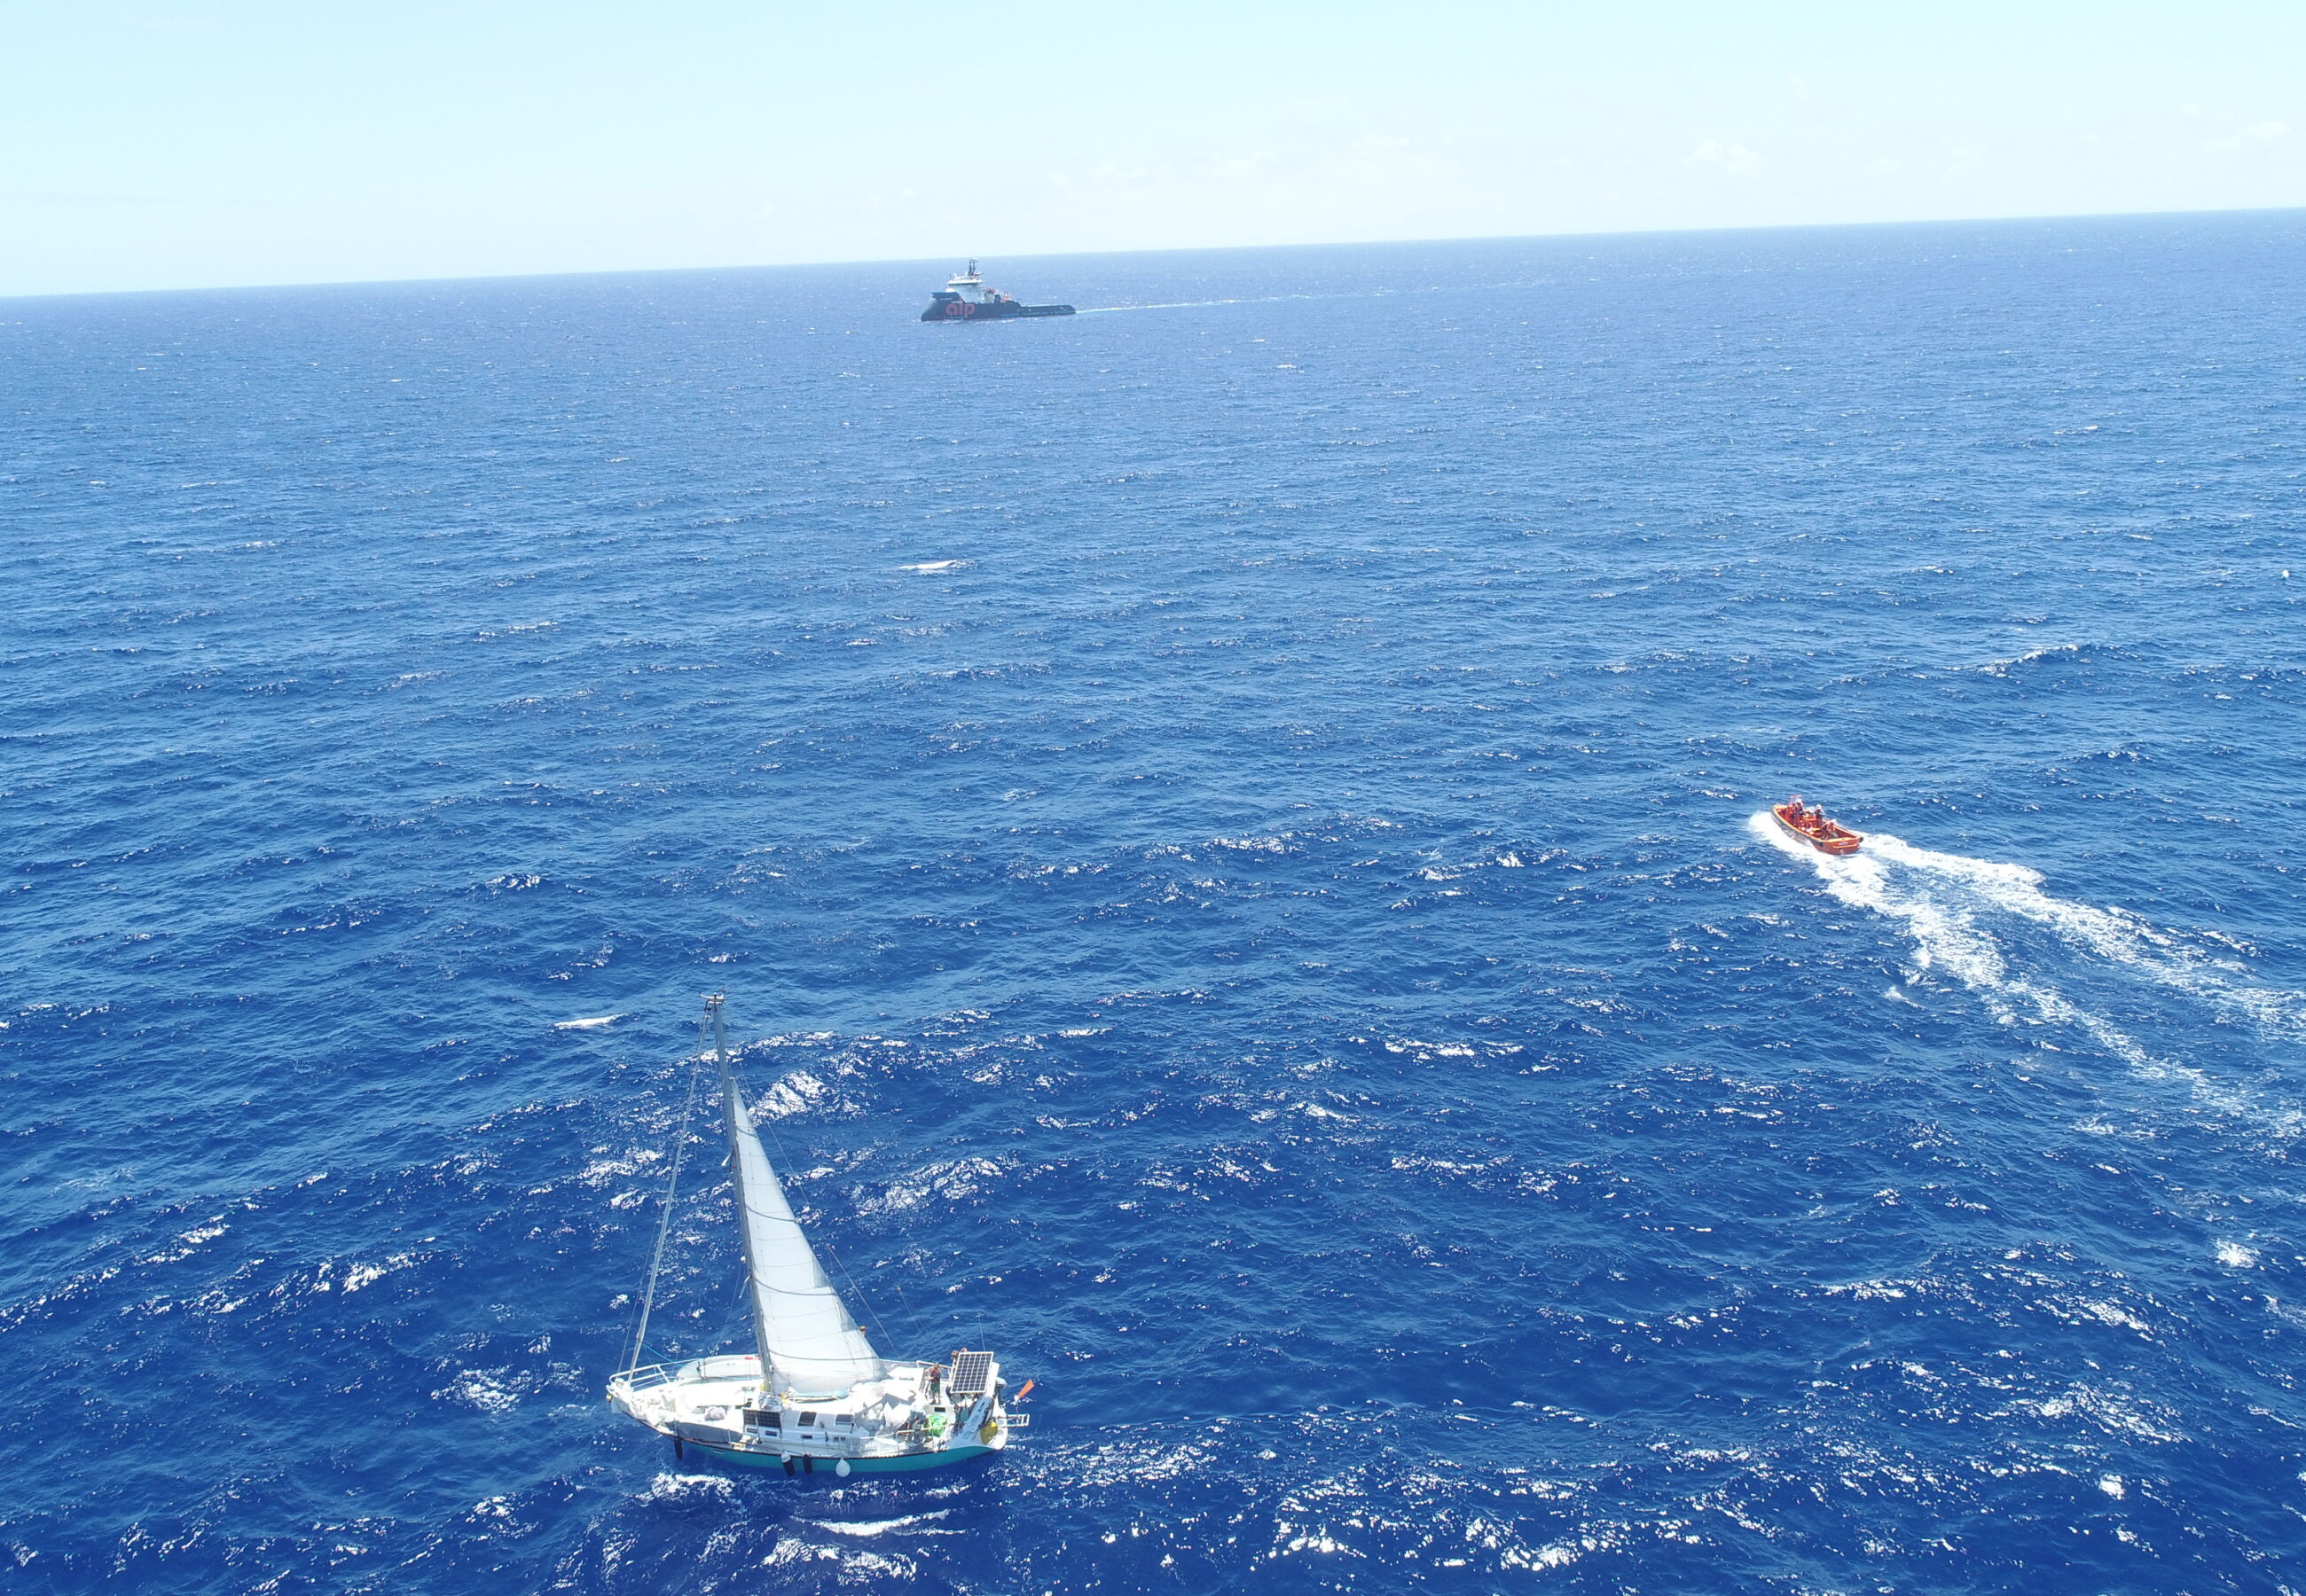 ALP Sweeper assists crew of yacht Jacotte 3